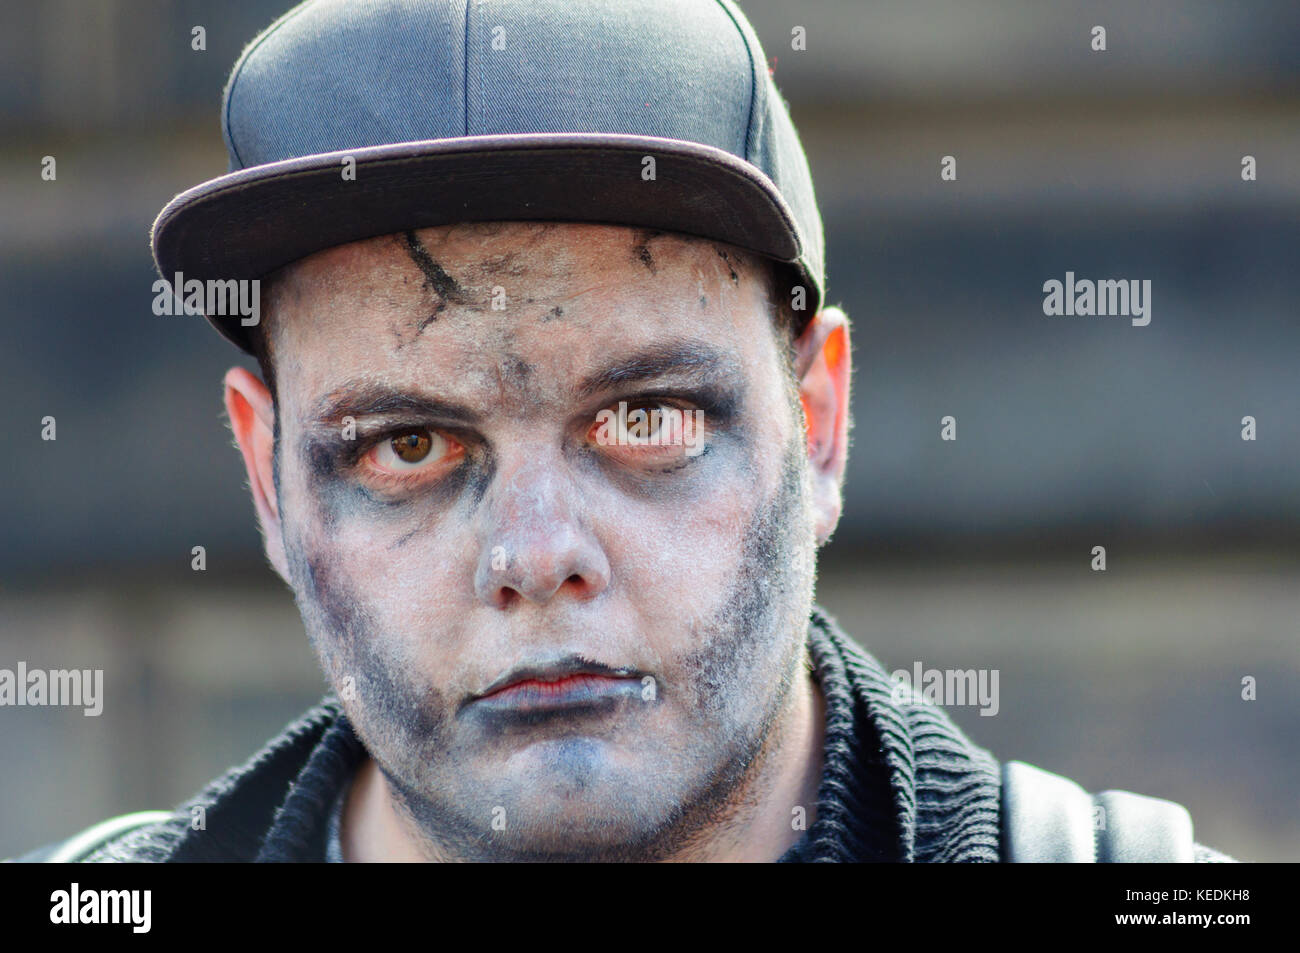 EDINBURGH, SCOTLAND - AUGUST 21, 2016: Male performer with a ghostly, zombie look on the high street during the - Stock Image